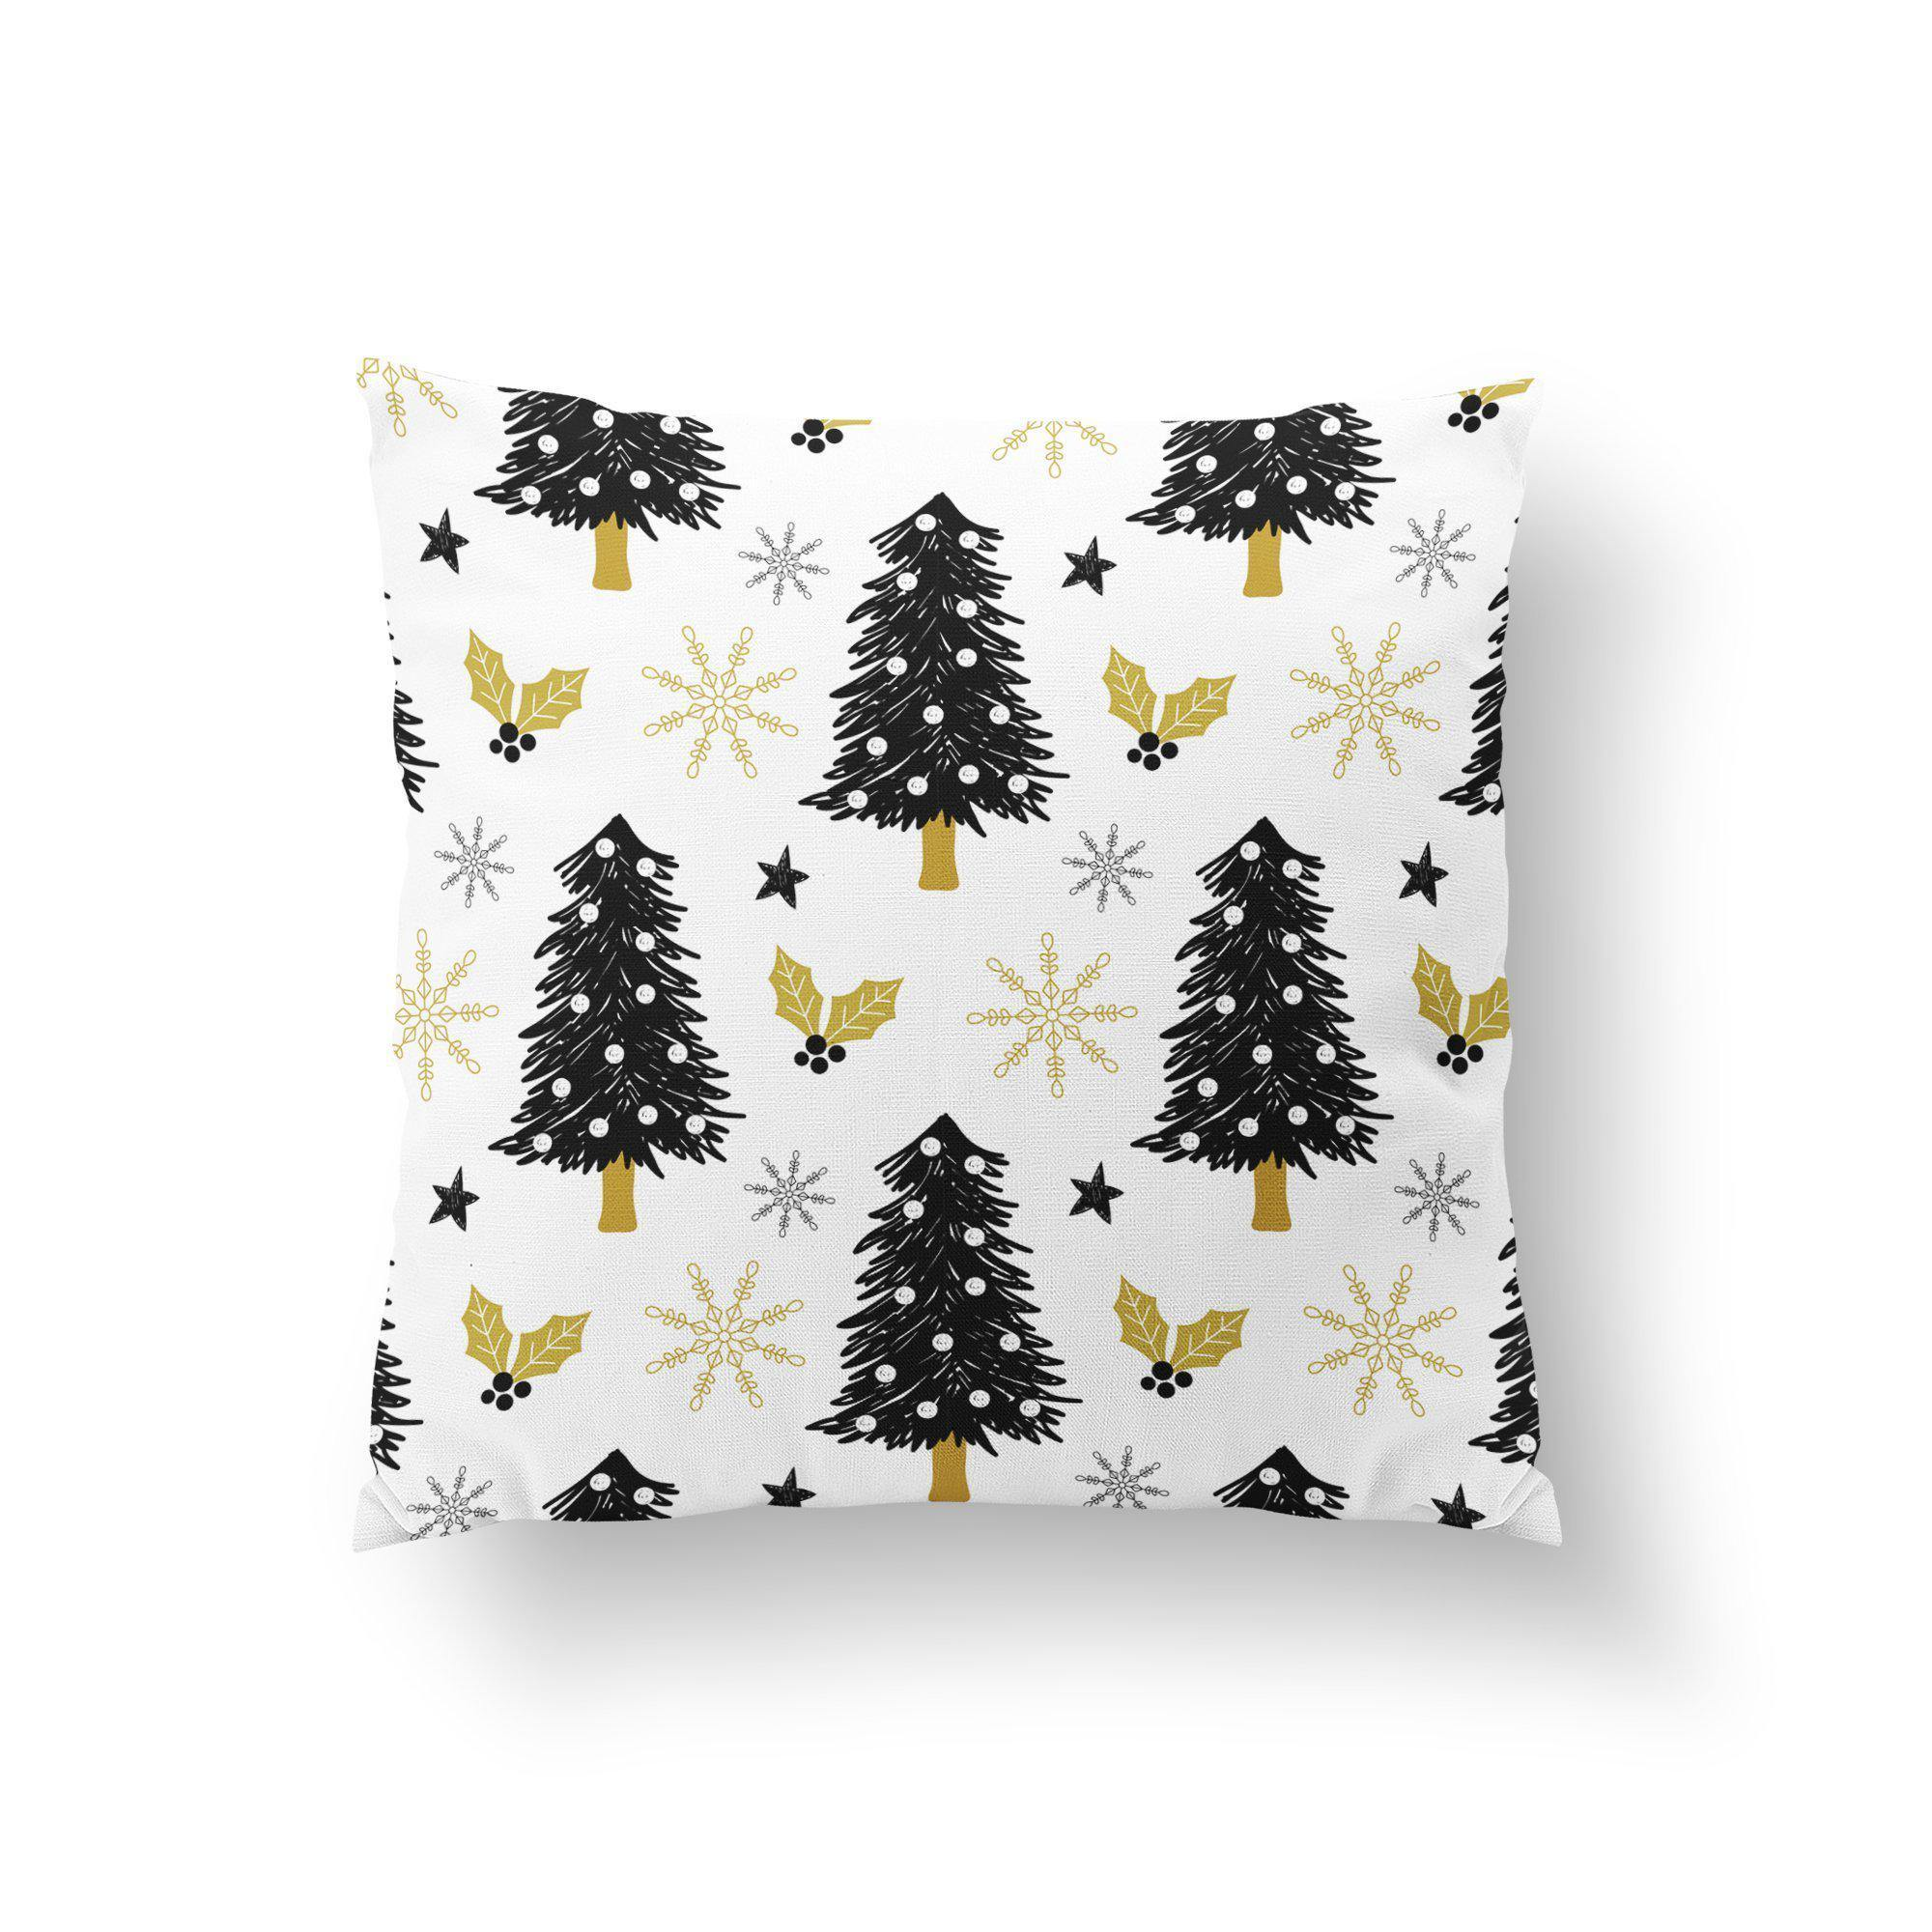 Black and White Christmas Pillow Cover - Pillow Covers - W.FRANCIS